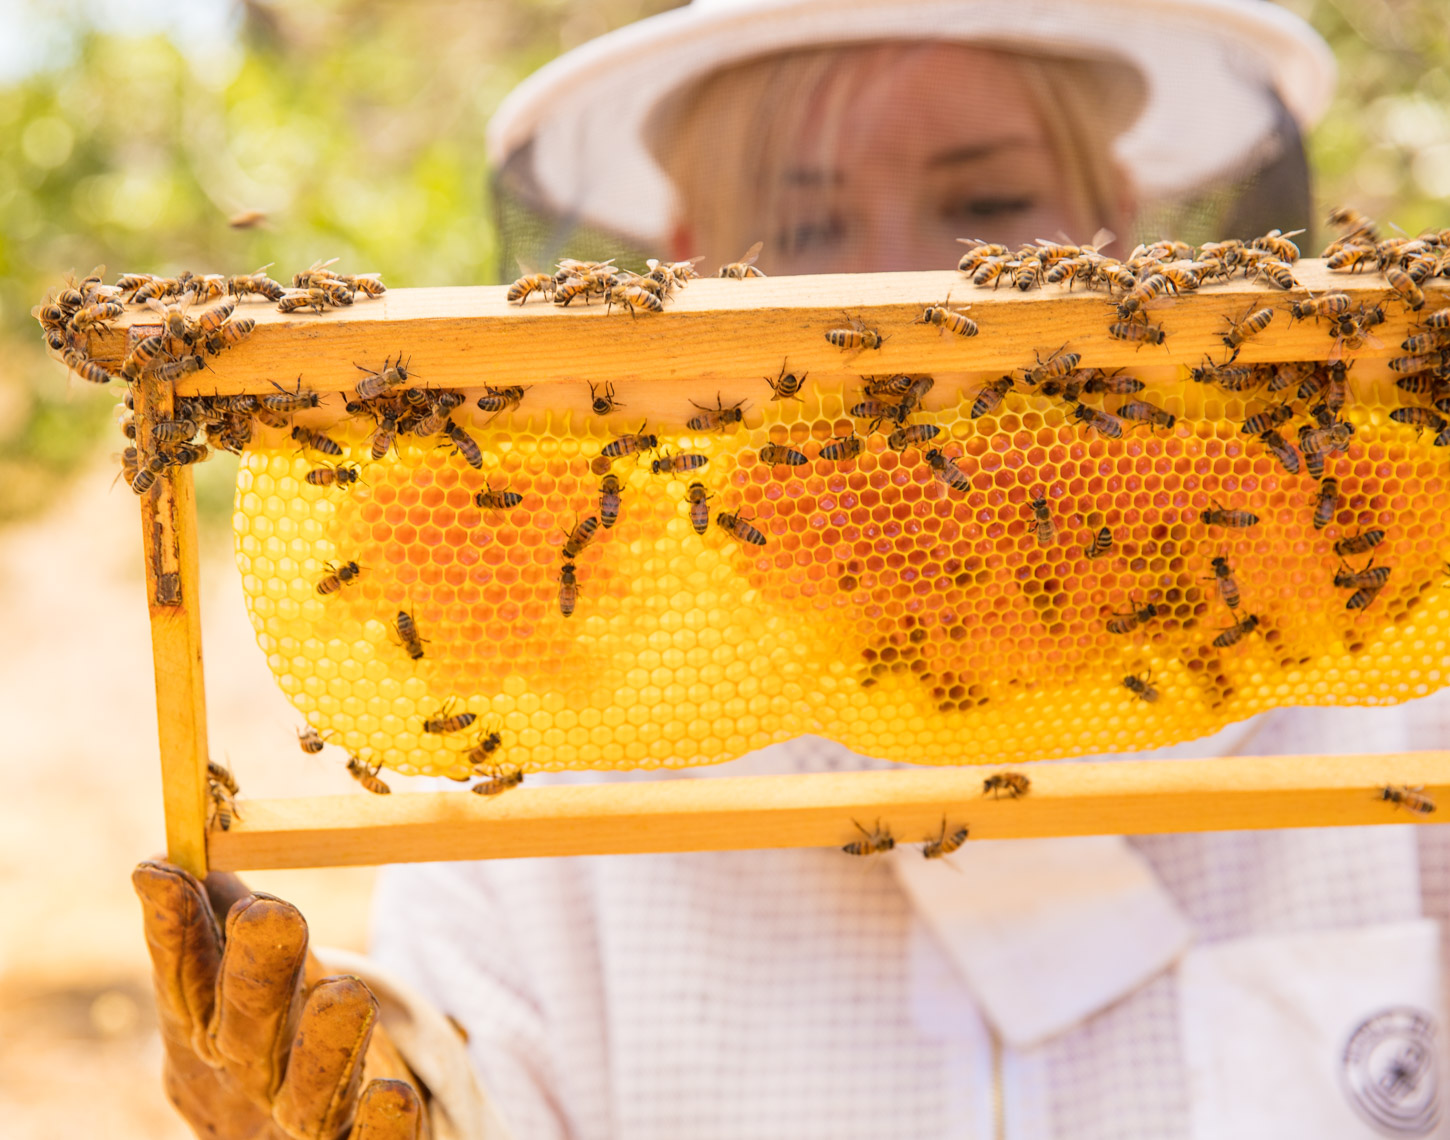 Female beekeeper inspecting hive | Commercial Lifestyle Photographer